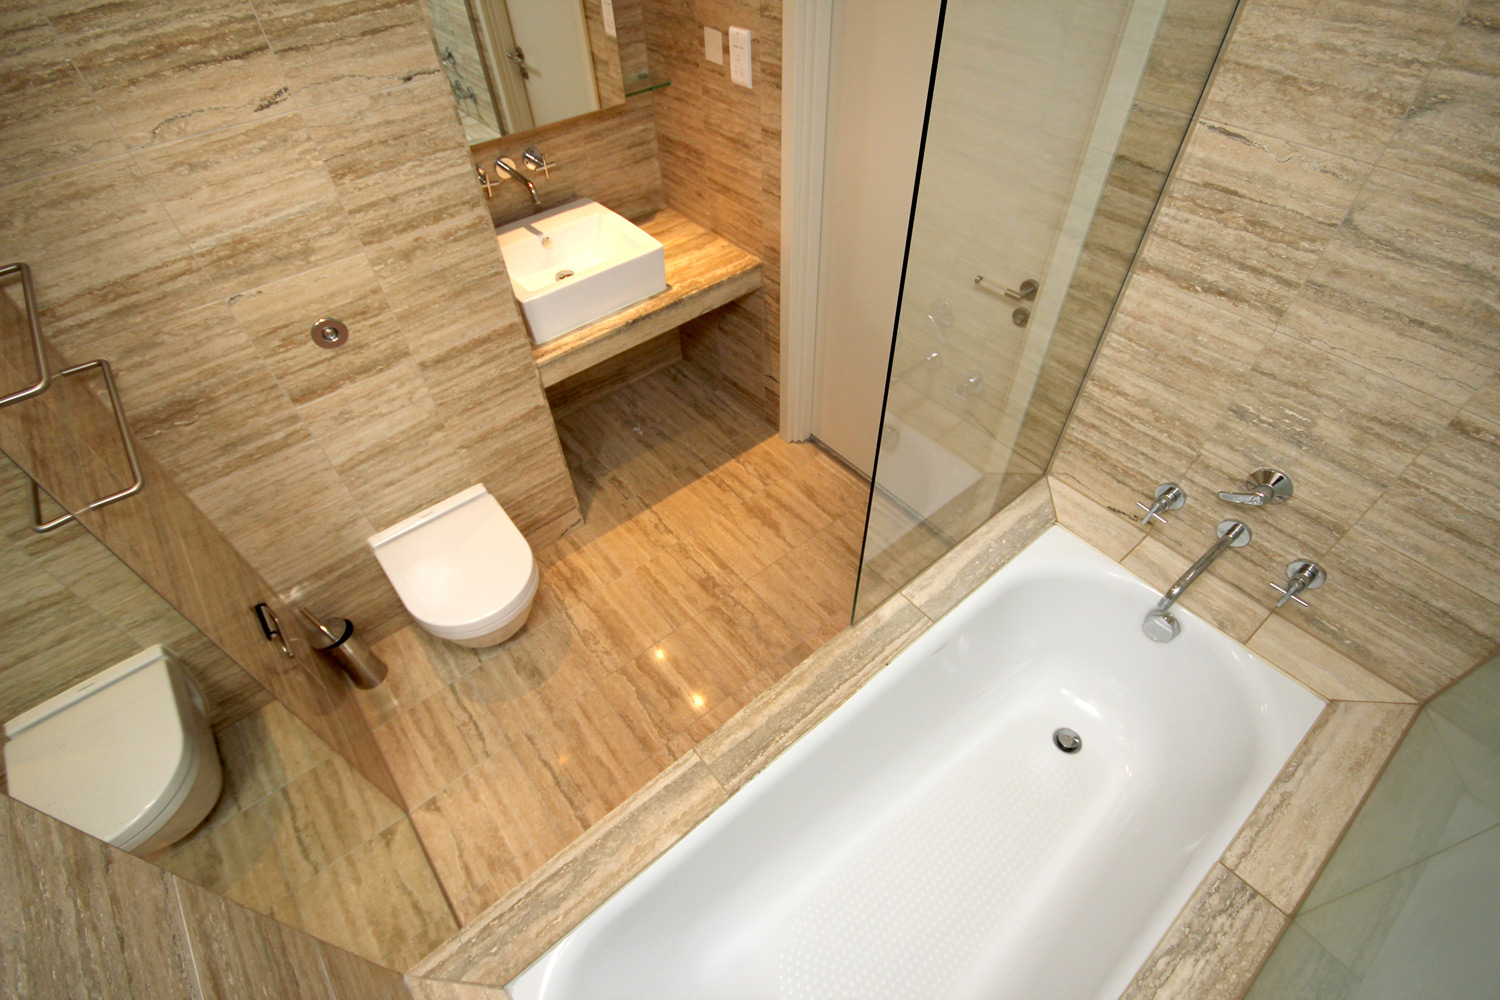 House, property photographer, architecture photography, property, bathroom, luxury, apartment, Dublin, home